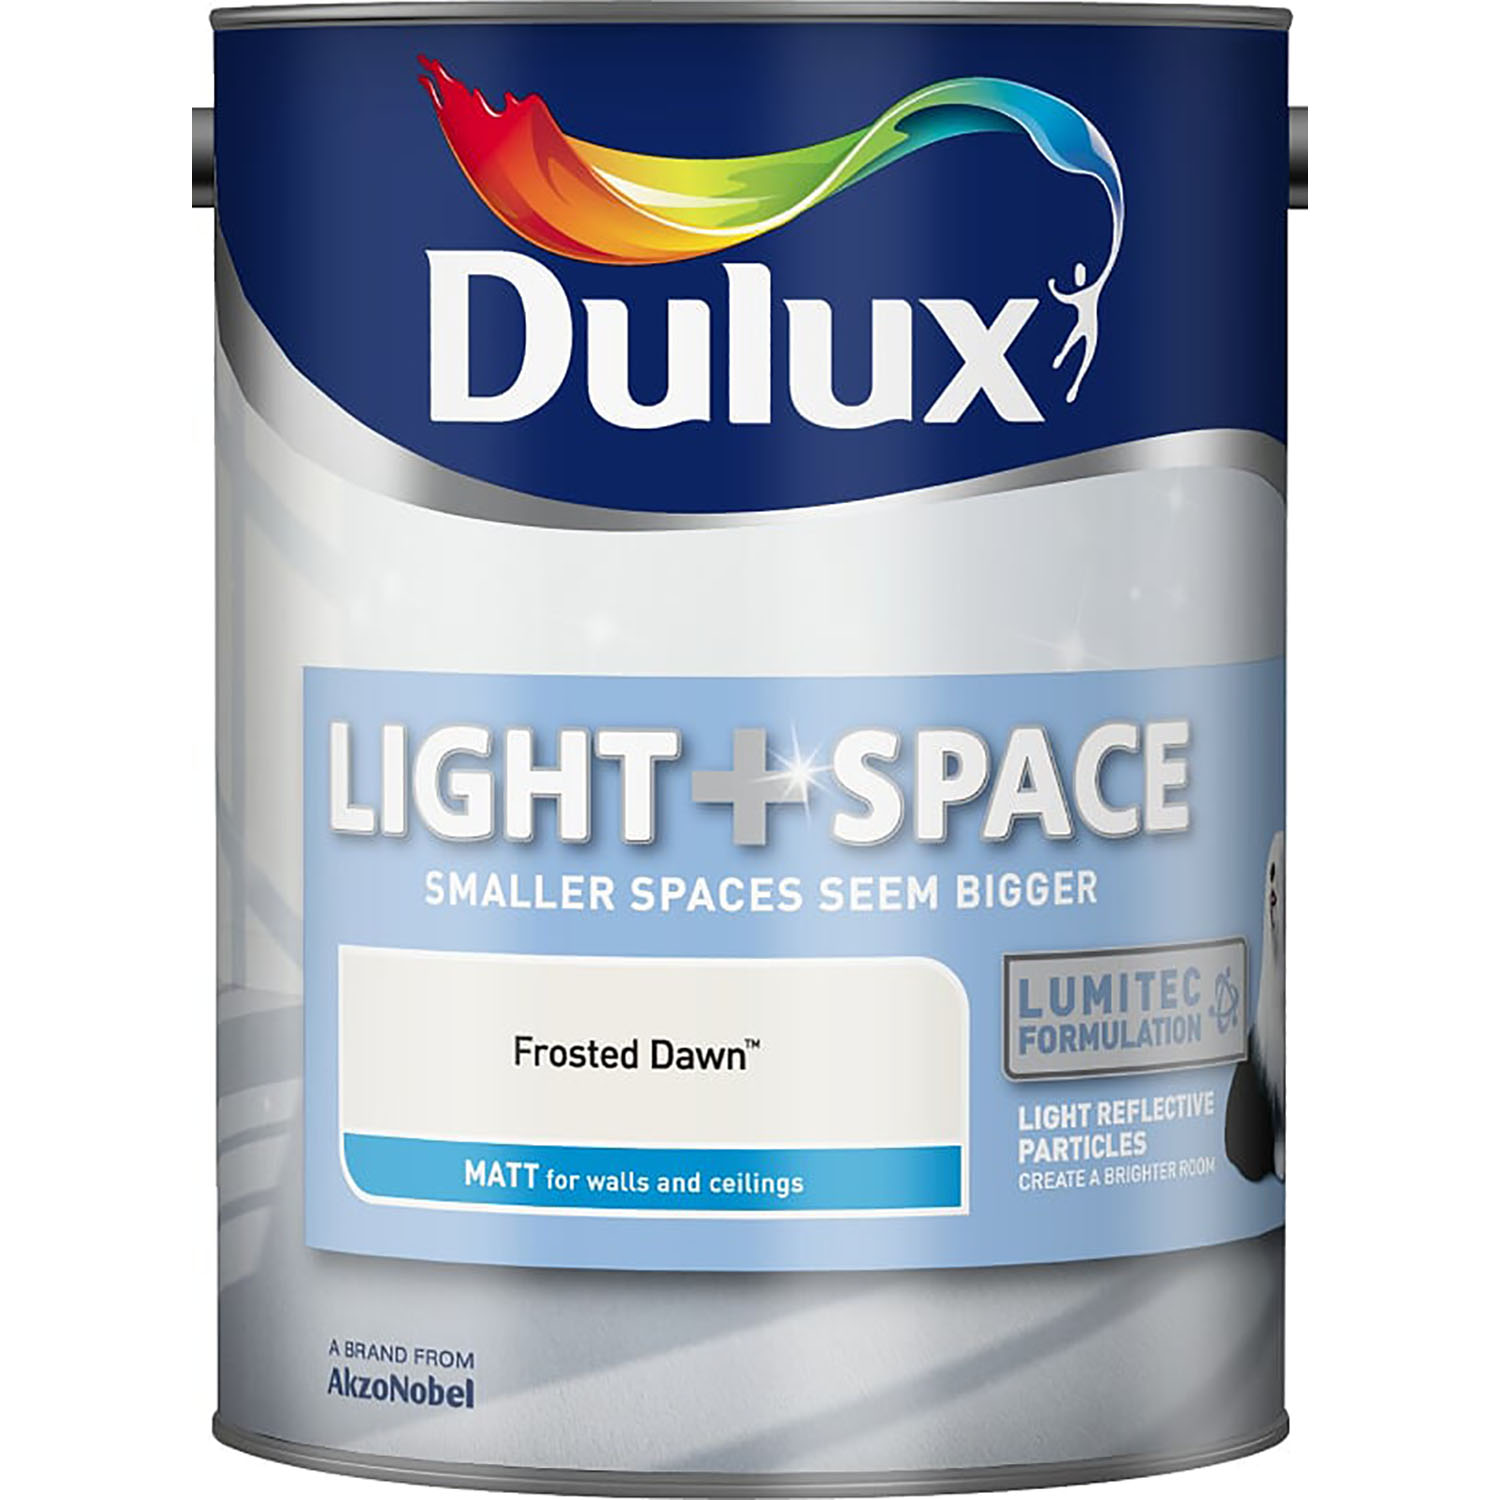 Dulux 5L Light and Space Matt Emulsion Paint, Frosted Dawn